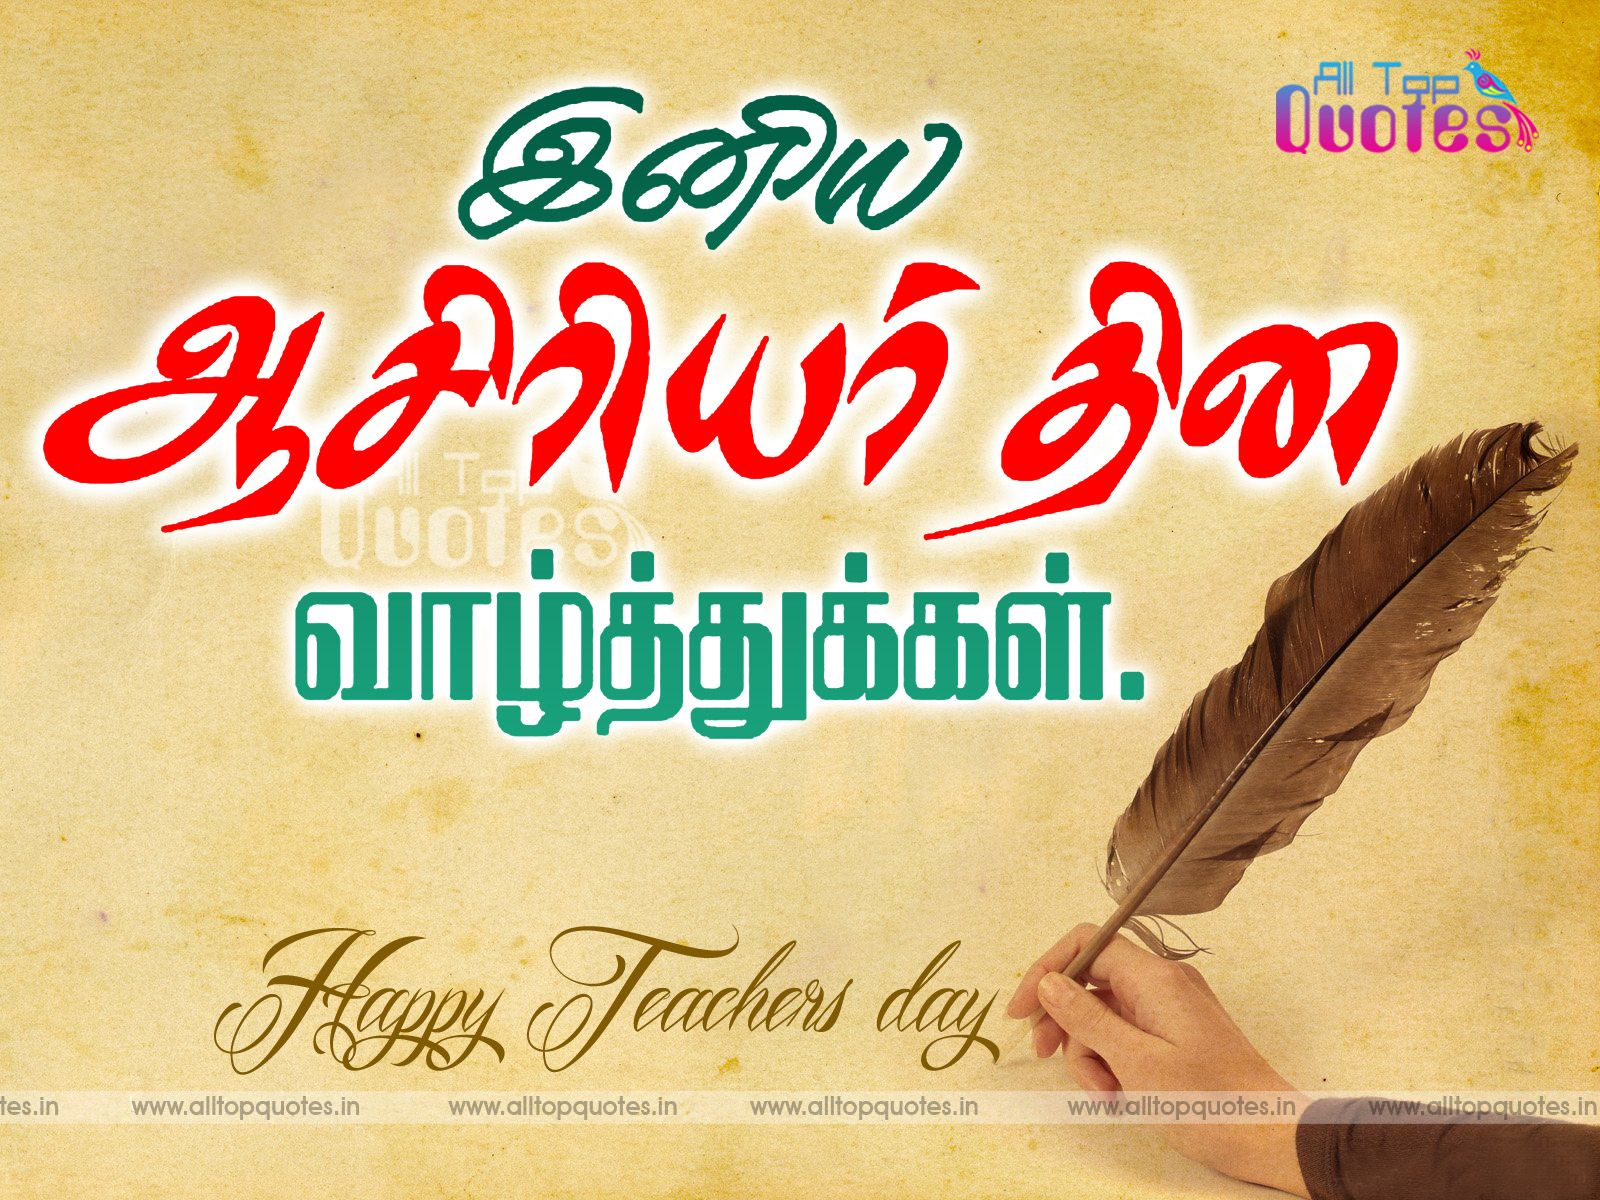 Tamil Happy Teachers Day Quotes In Tamil Language All Top Quotes Telugu Quotes Englis Happy Teachers Day Teachers Day Teachers Day Card